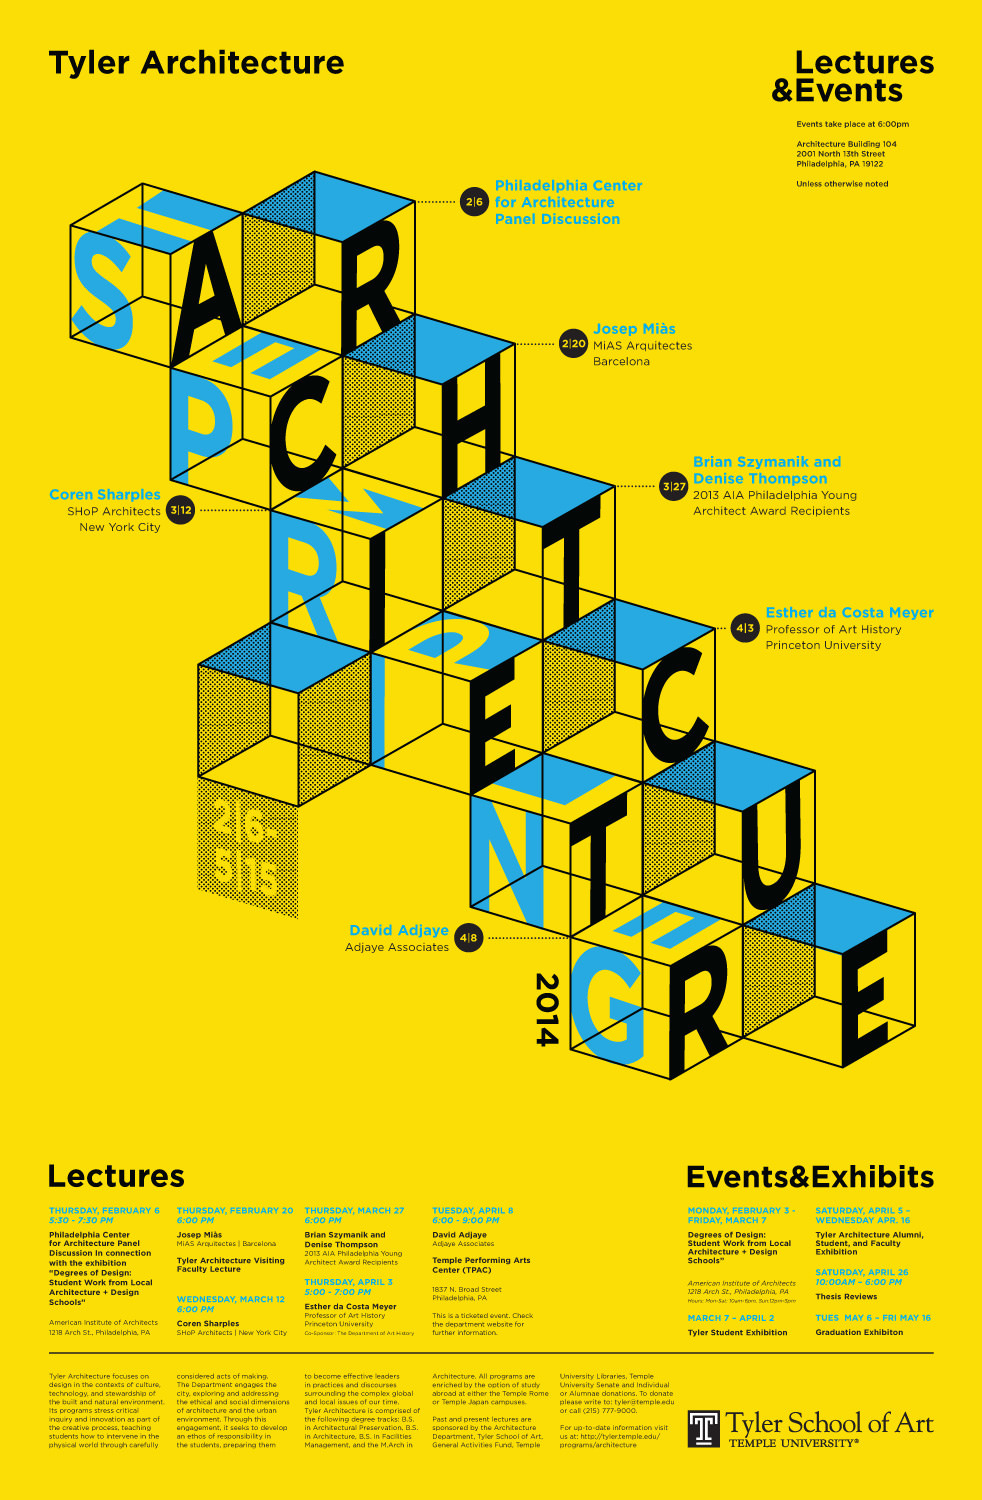 Spring 14 Lectures and Events at Tyler Architecture, Temple University. Image courtesy of Tyler Architecture.